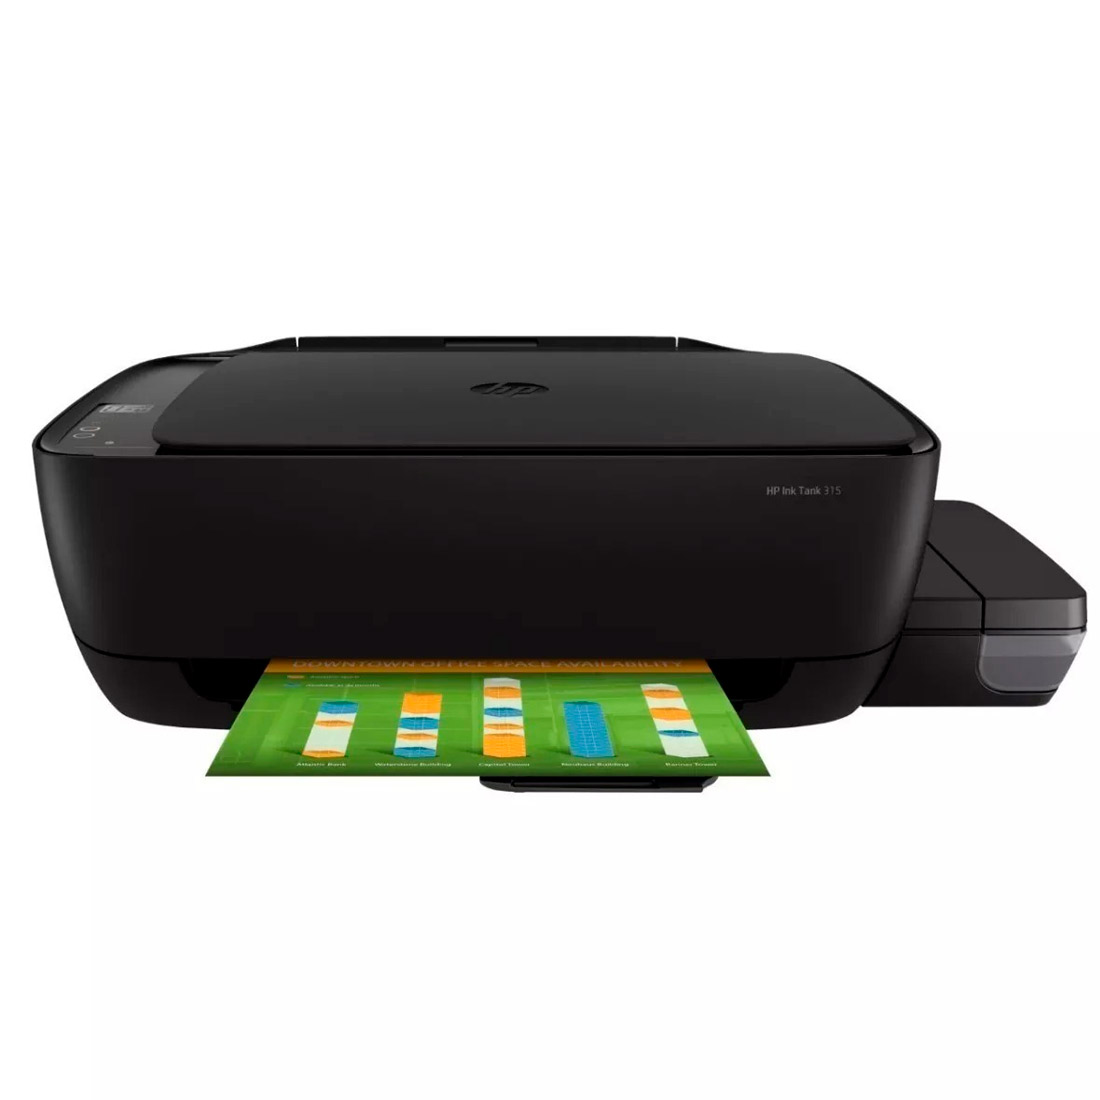 Impresora HP Ink Tank 315 AiO Printer